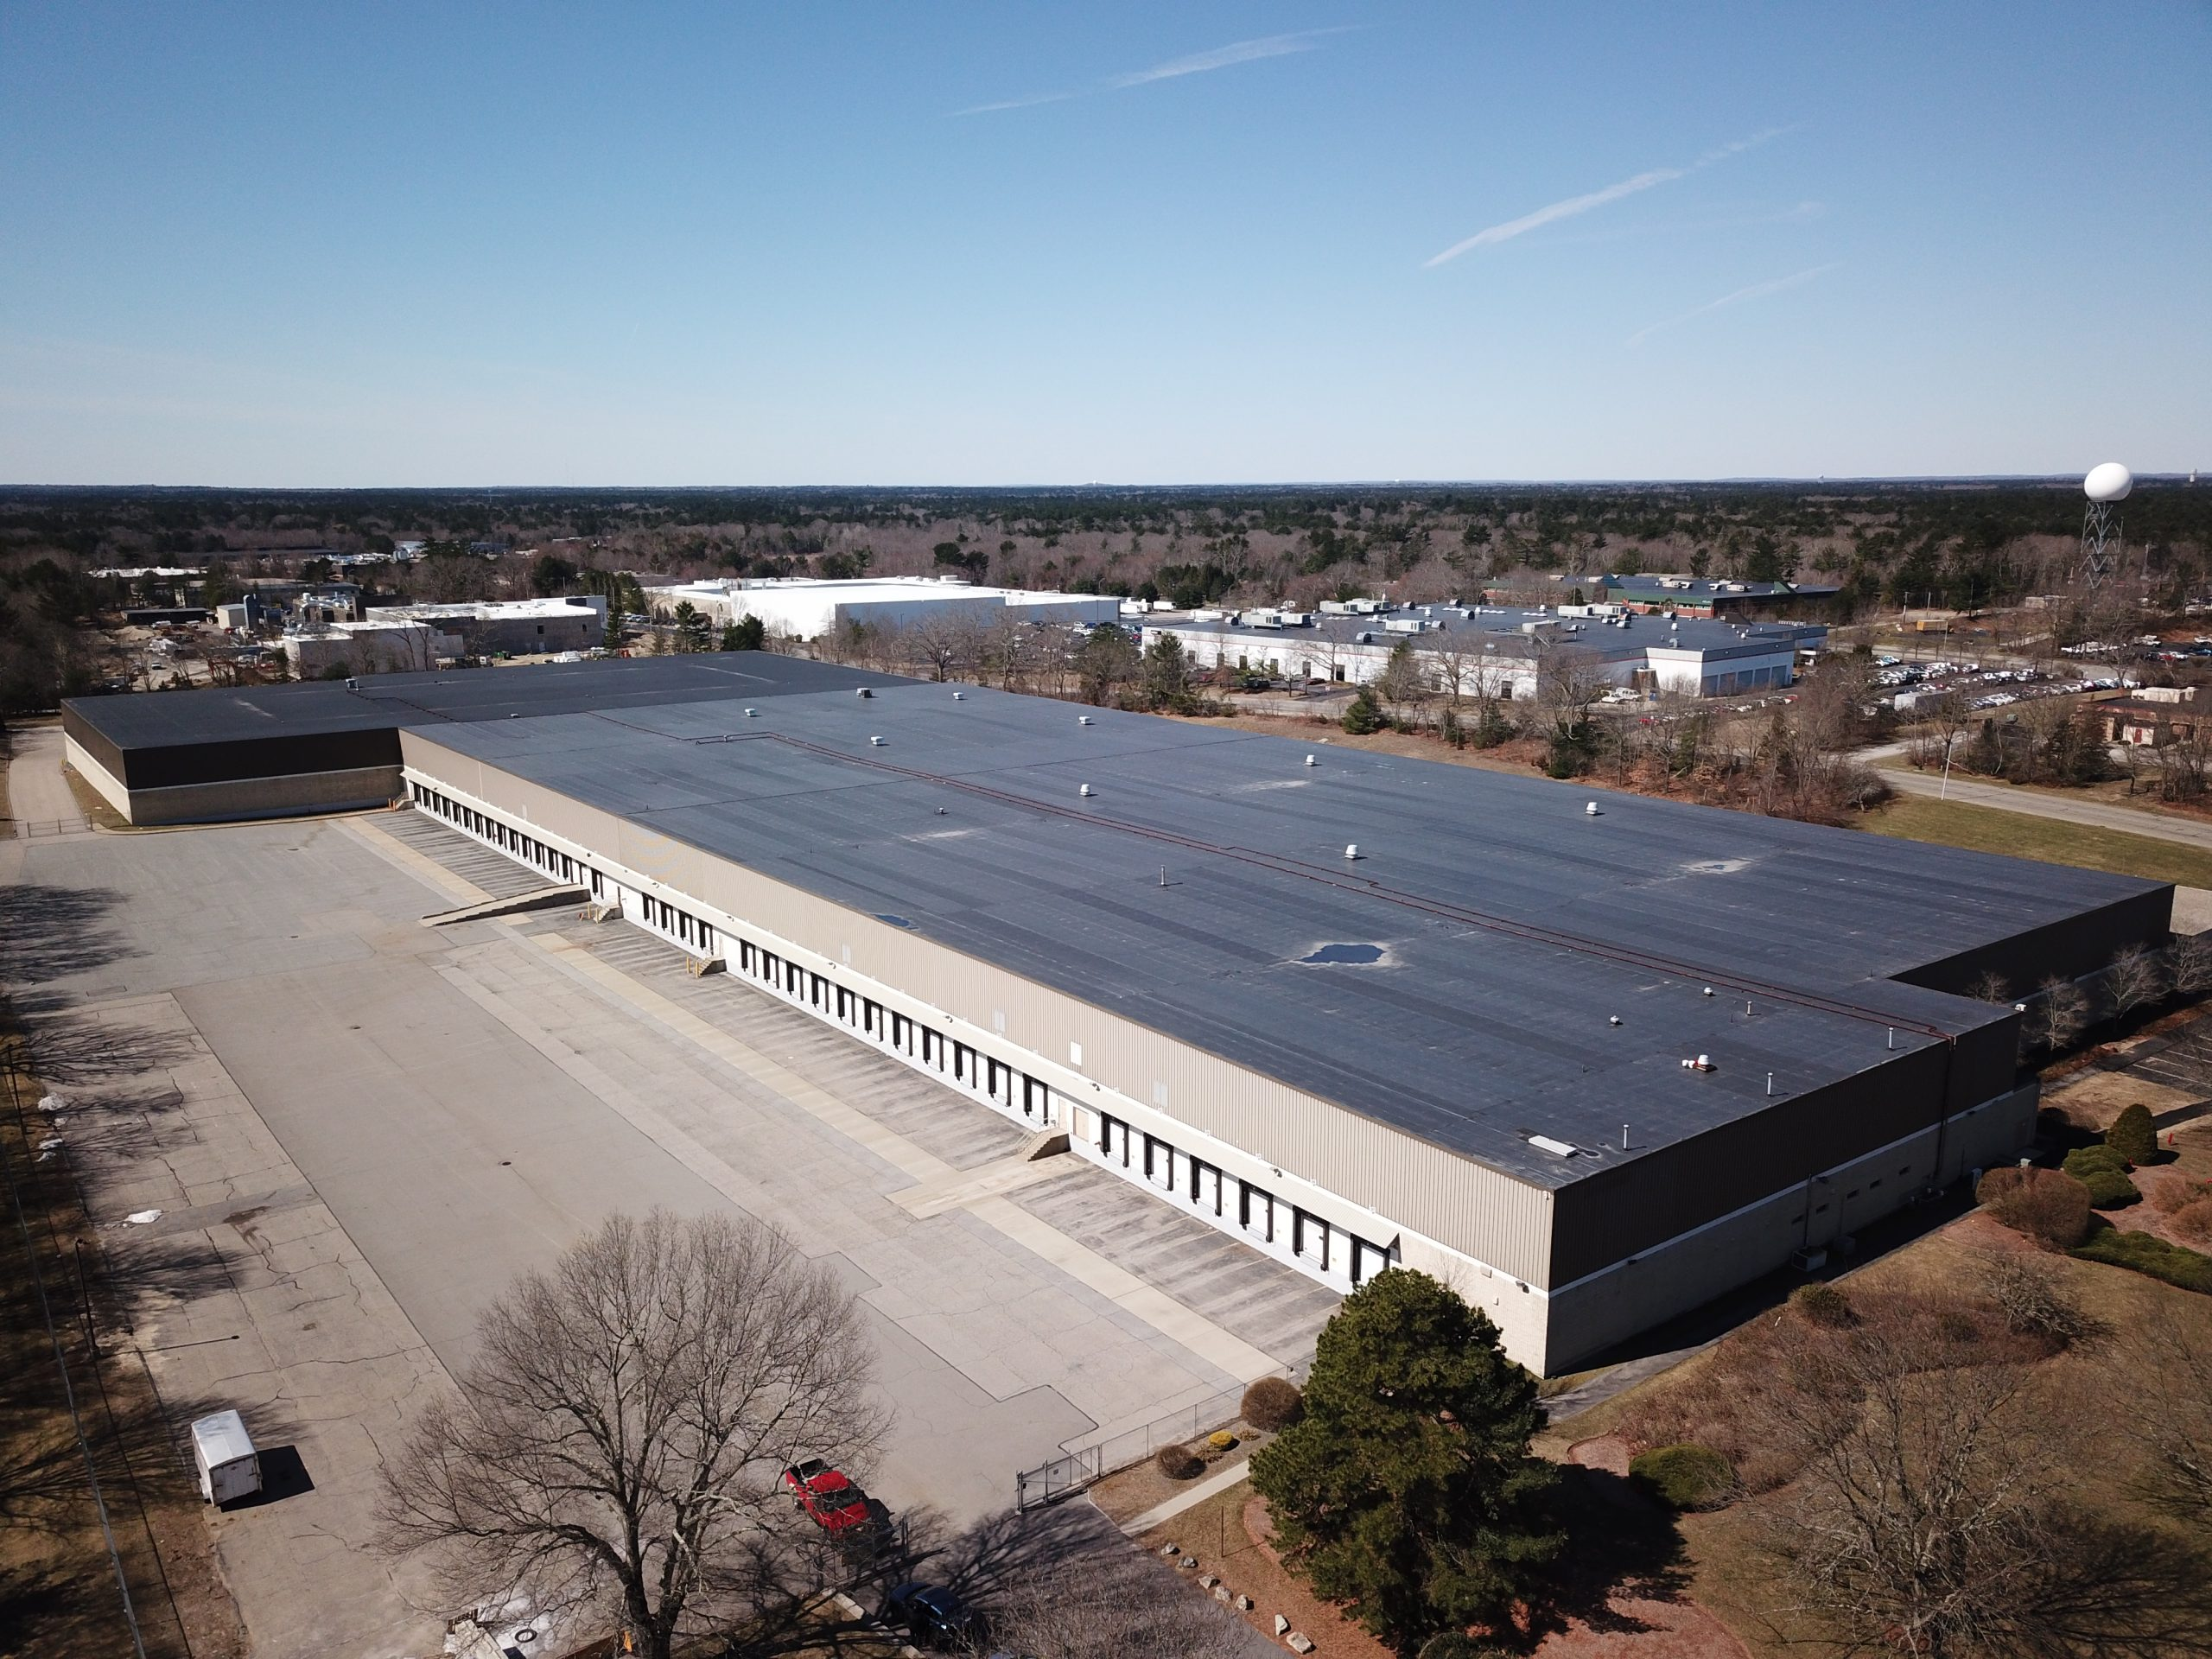 aerial view of commercial real estate loading docks